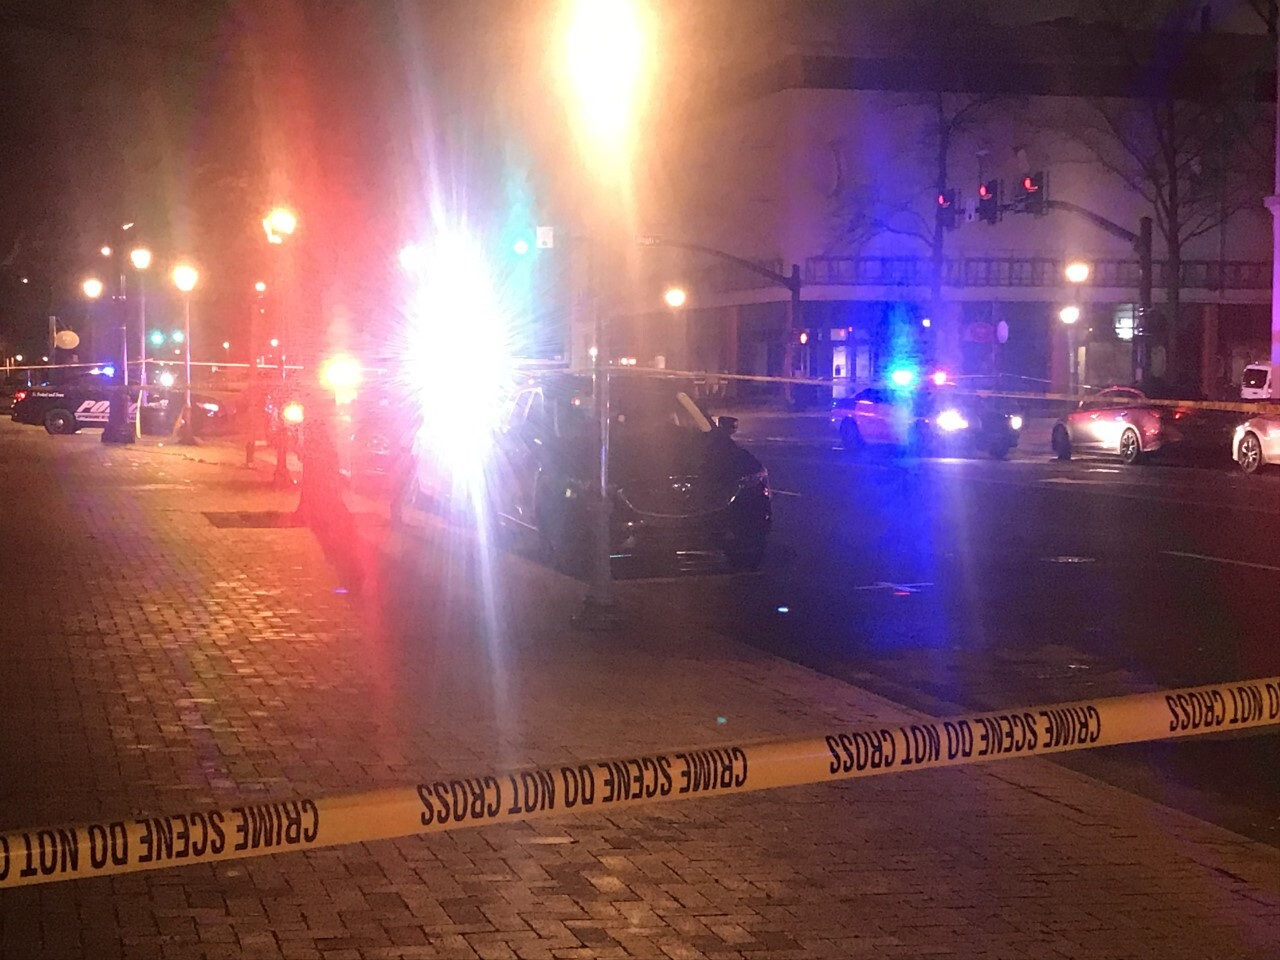 Photos: 19-year-old man killed in Olde Towne Portsmouth shooting, policeinvestigating